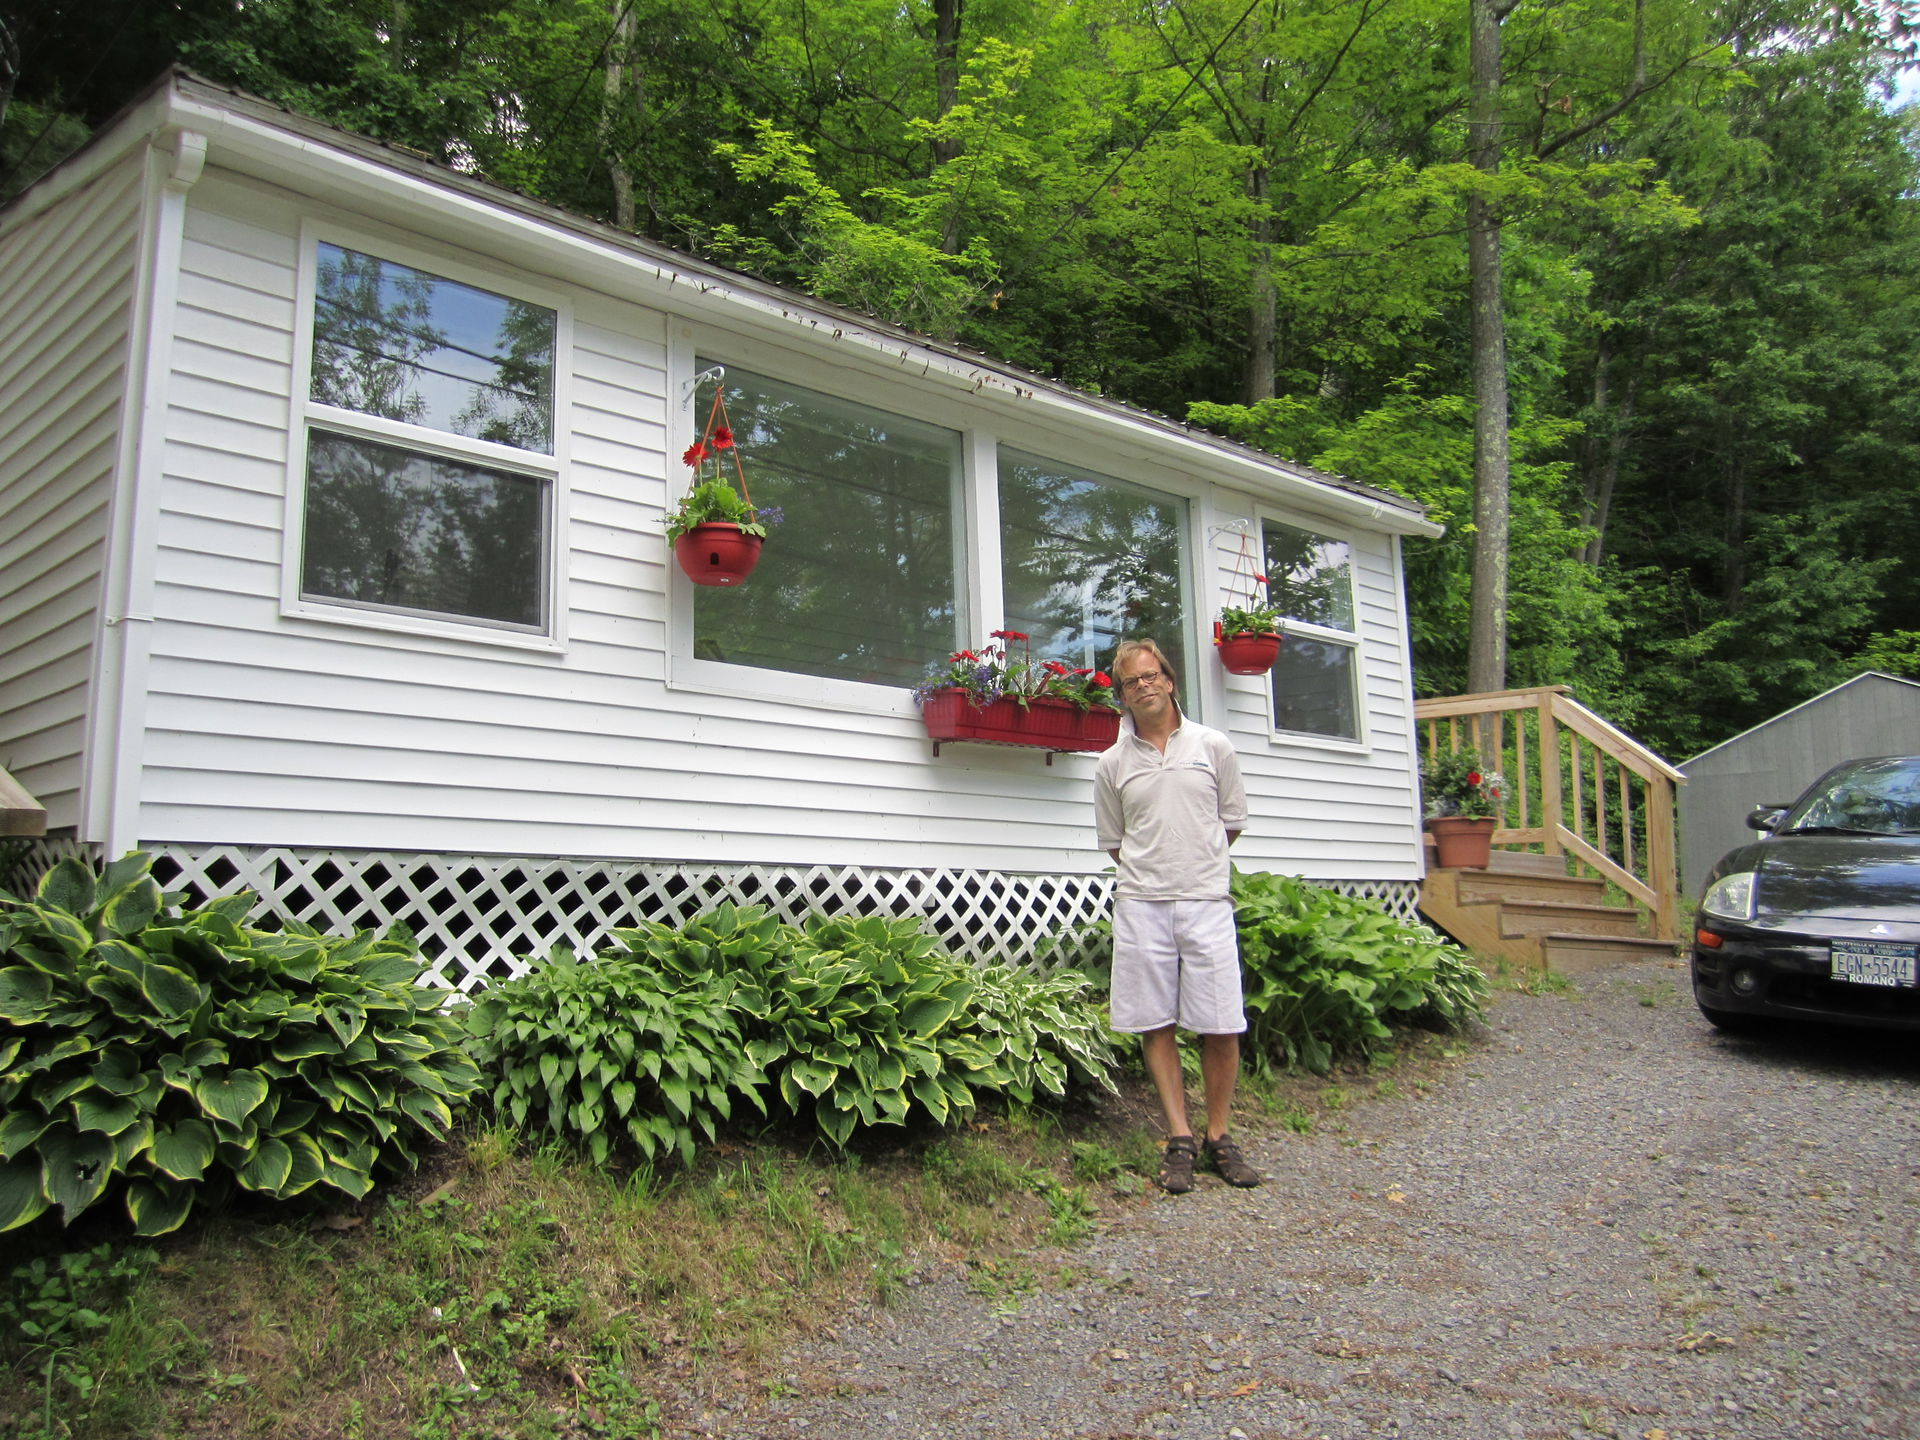 Upstate New York camp with lake access 6 miles from Cooperstown NY